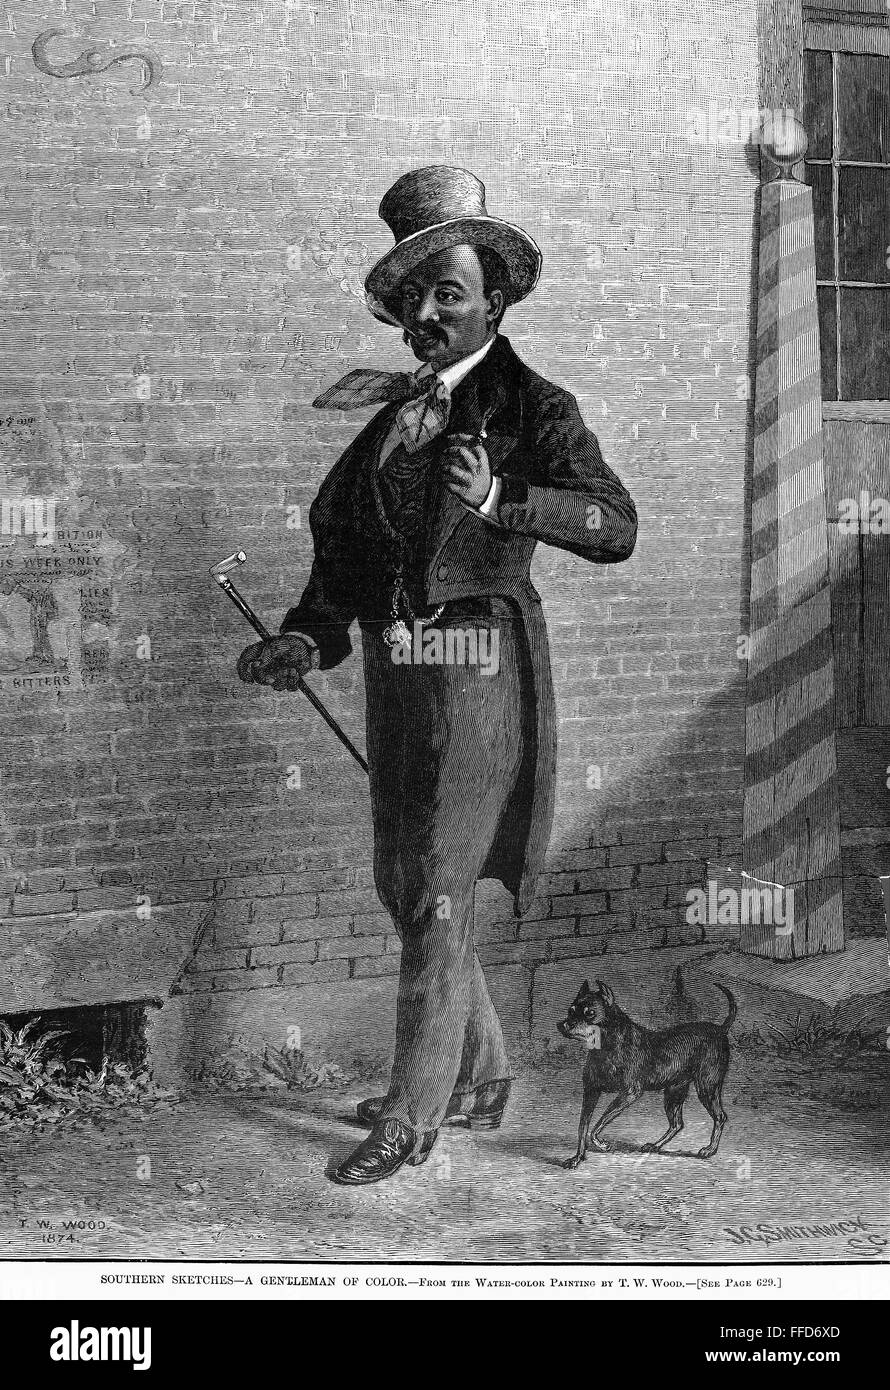 SOUTHERN SKETCHES NEGRO GENTLEMAN OF COLOR AND HIS DOG